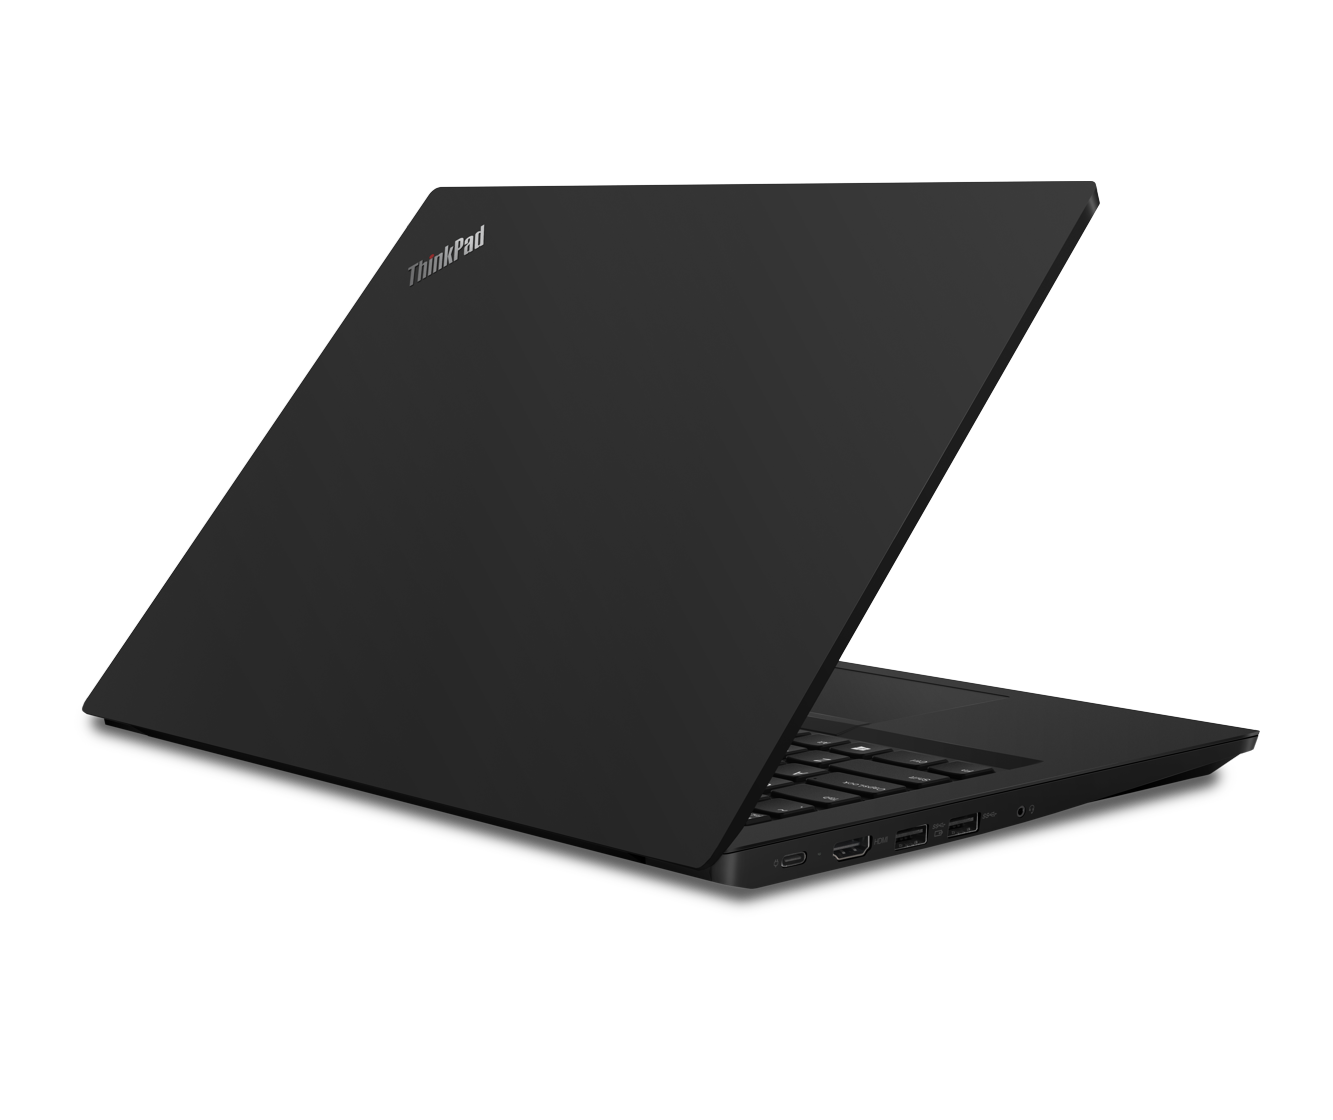 Lenovo ThinkPad E490 notebook